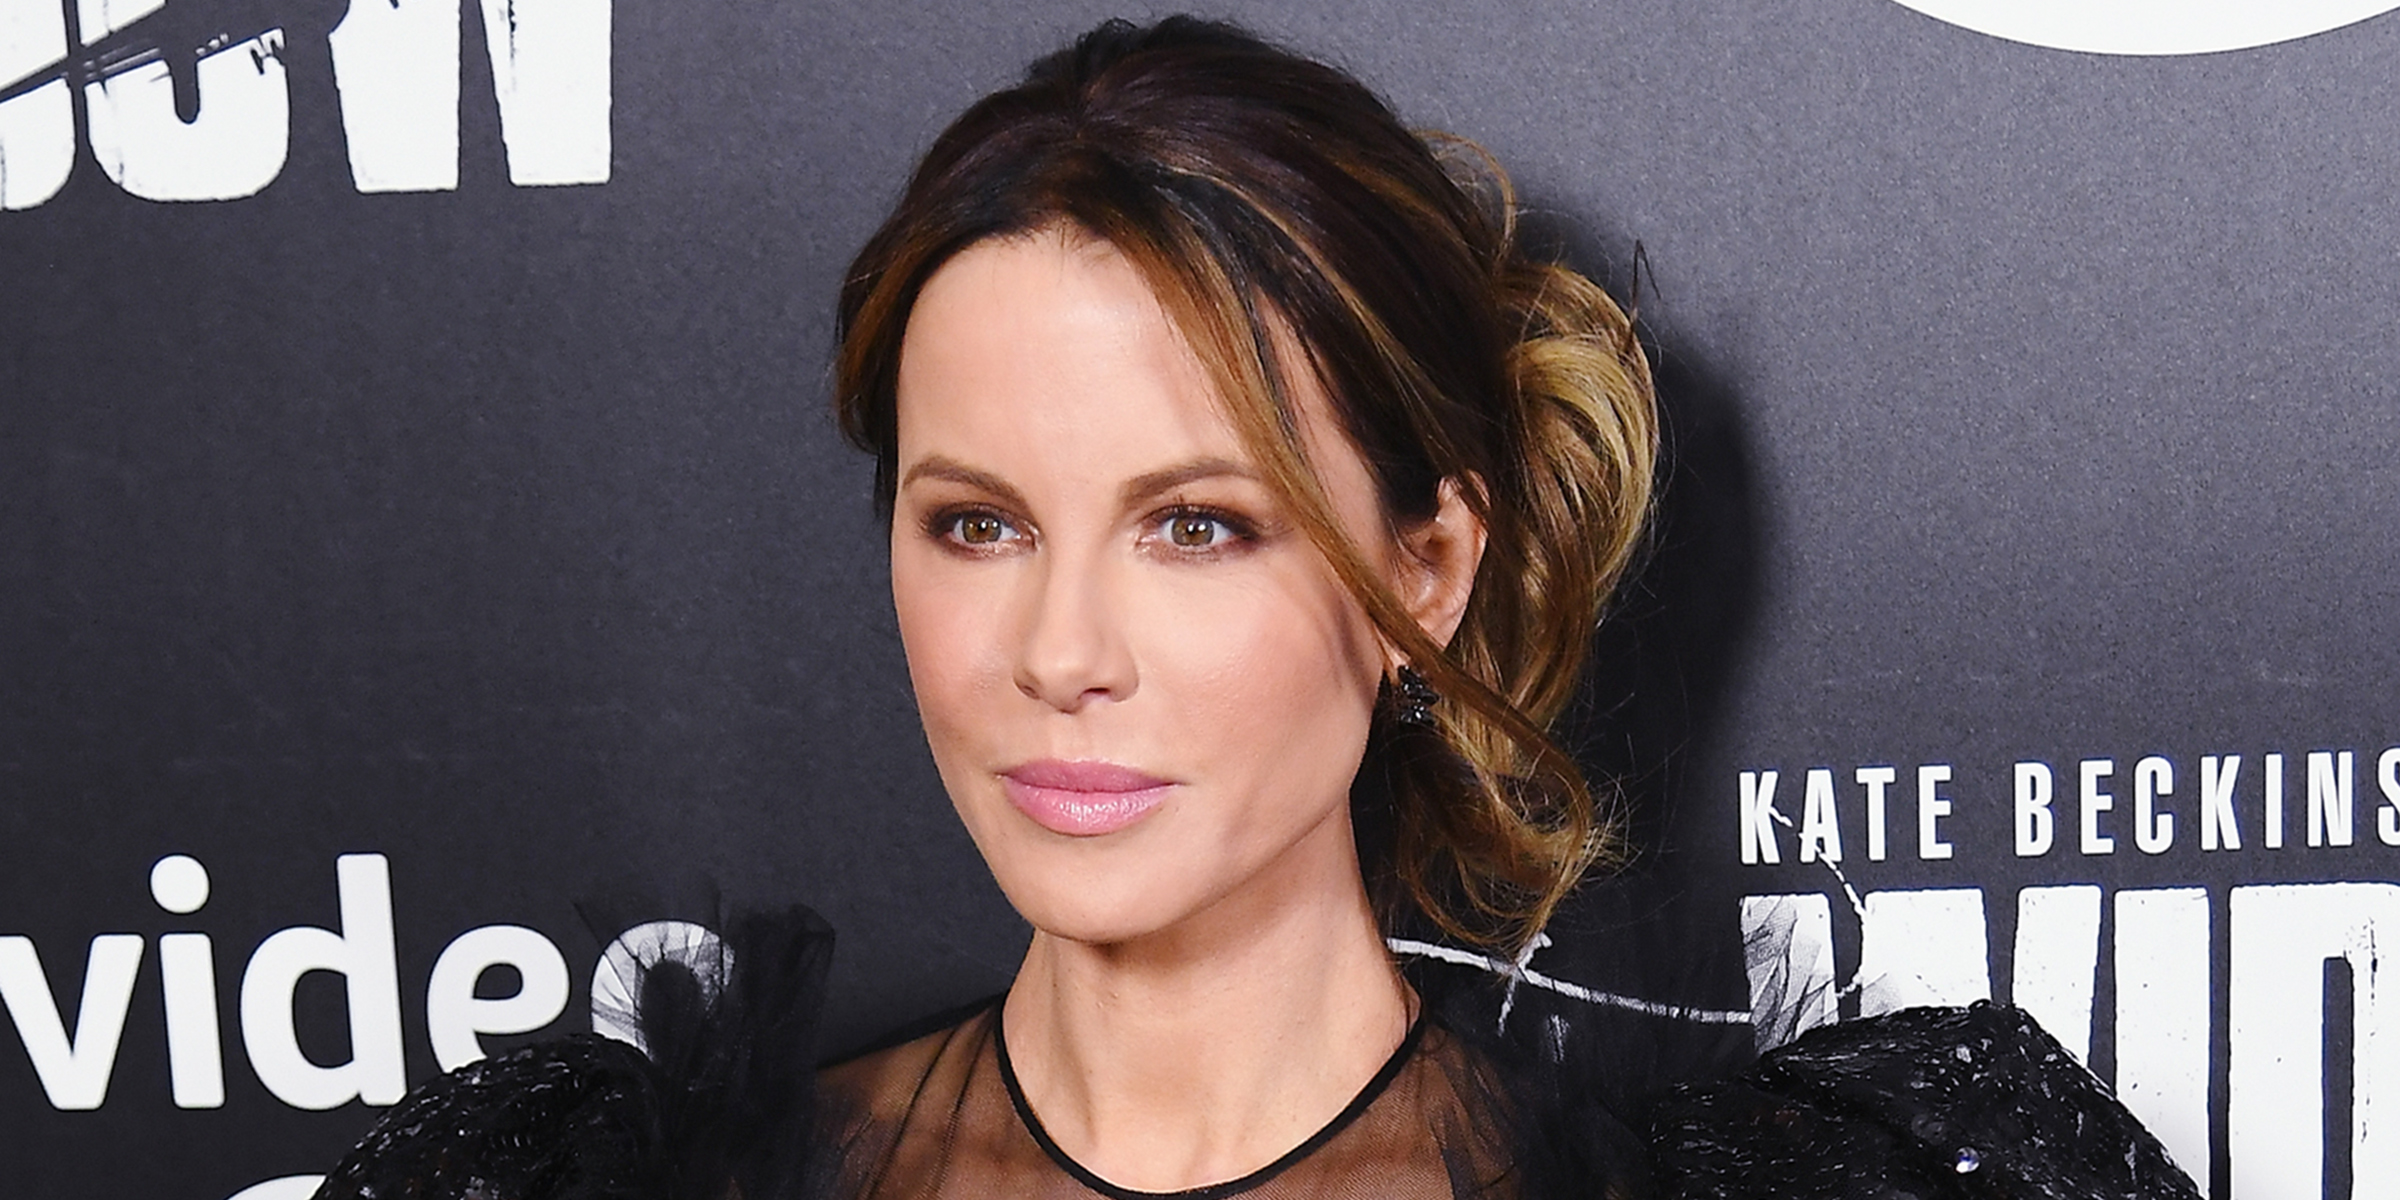 Kate Beckinsale Shows Off An Edgy Blond Bob In Photos See The Look